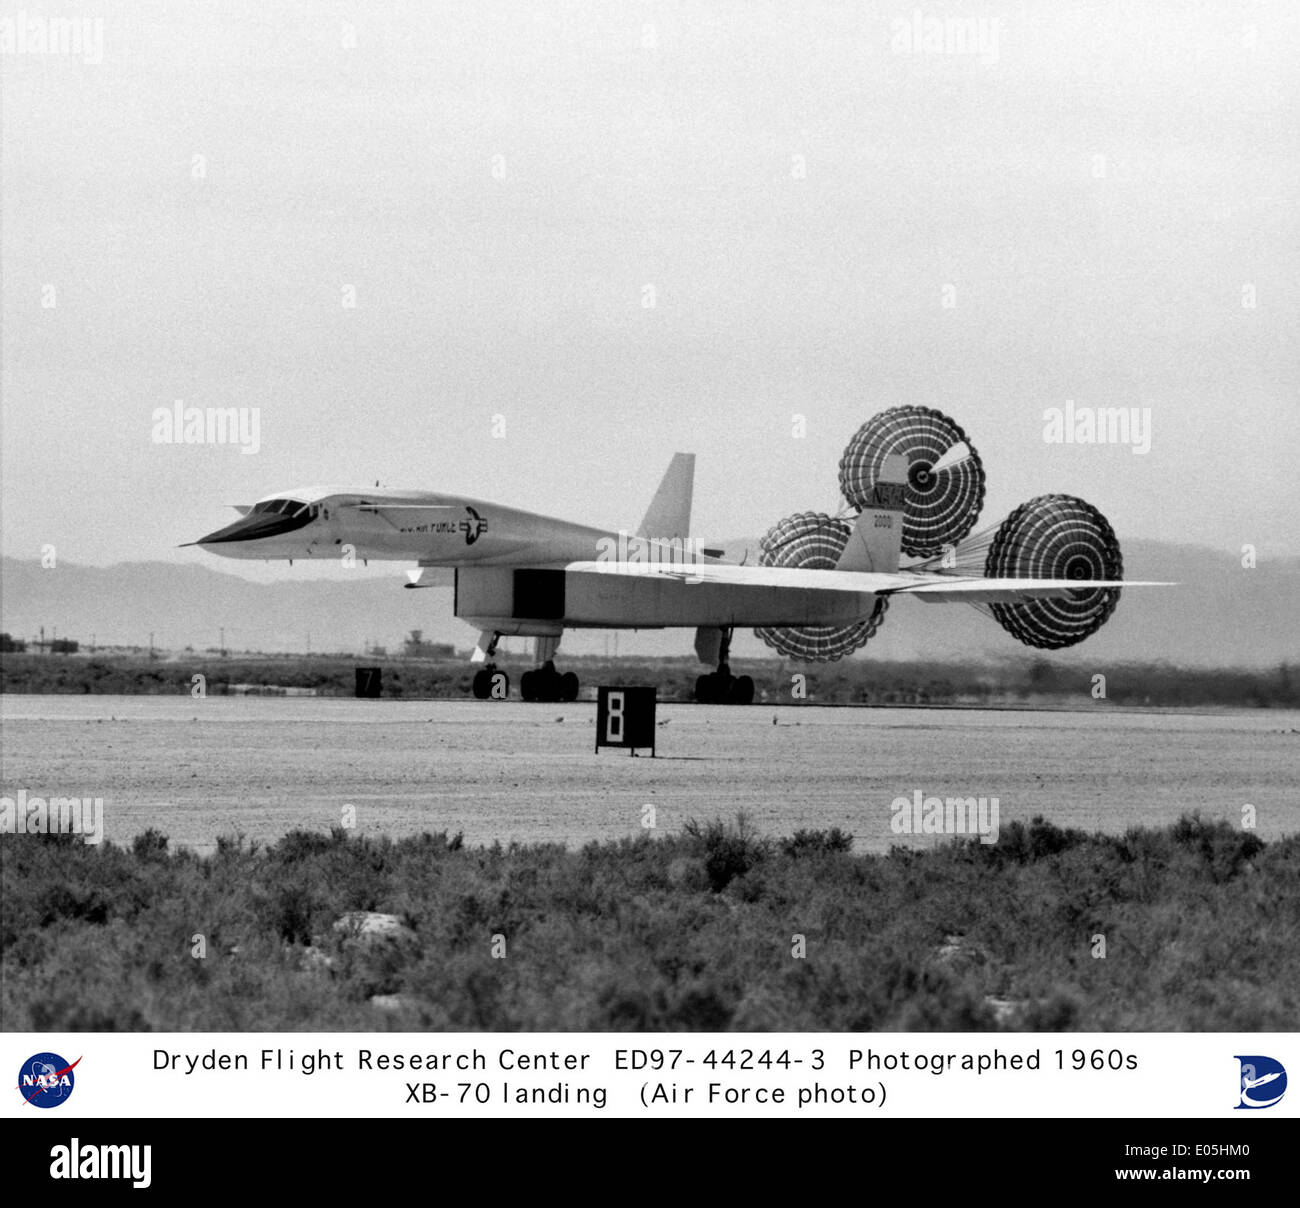 XB-70A landing with drag chutes deployed - Stock Image